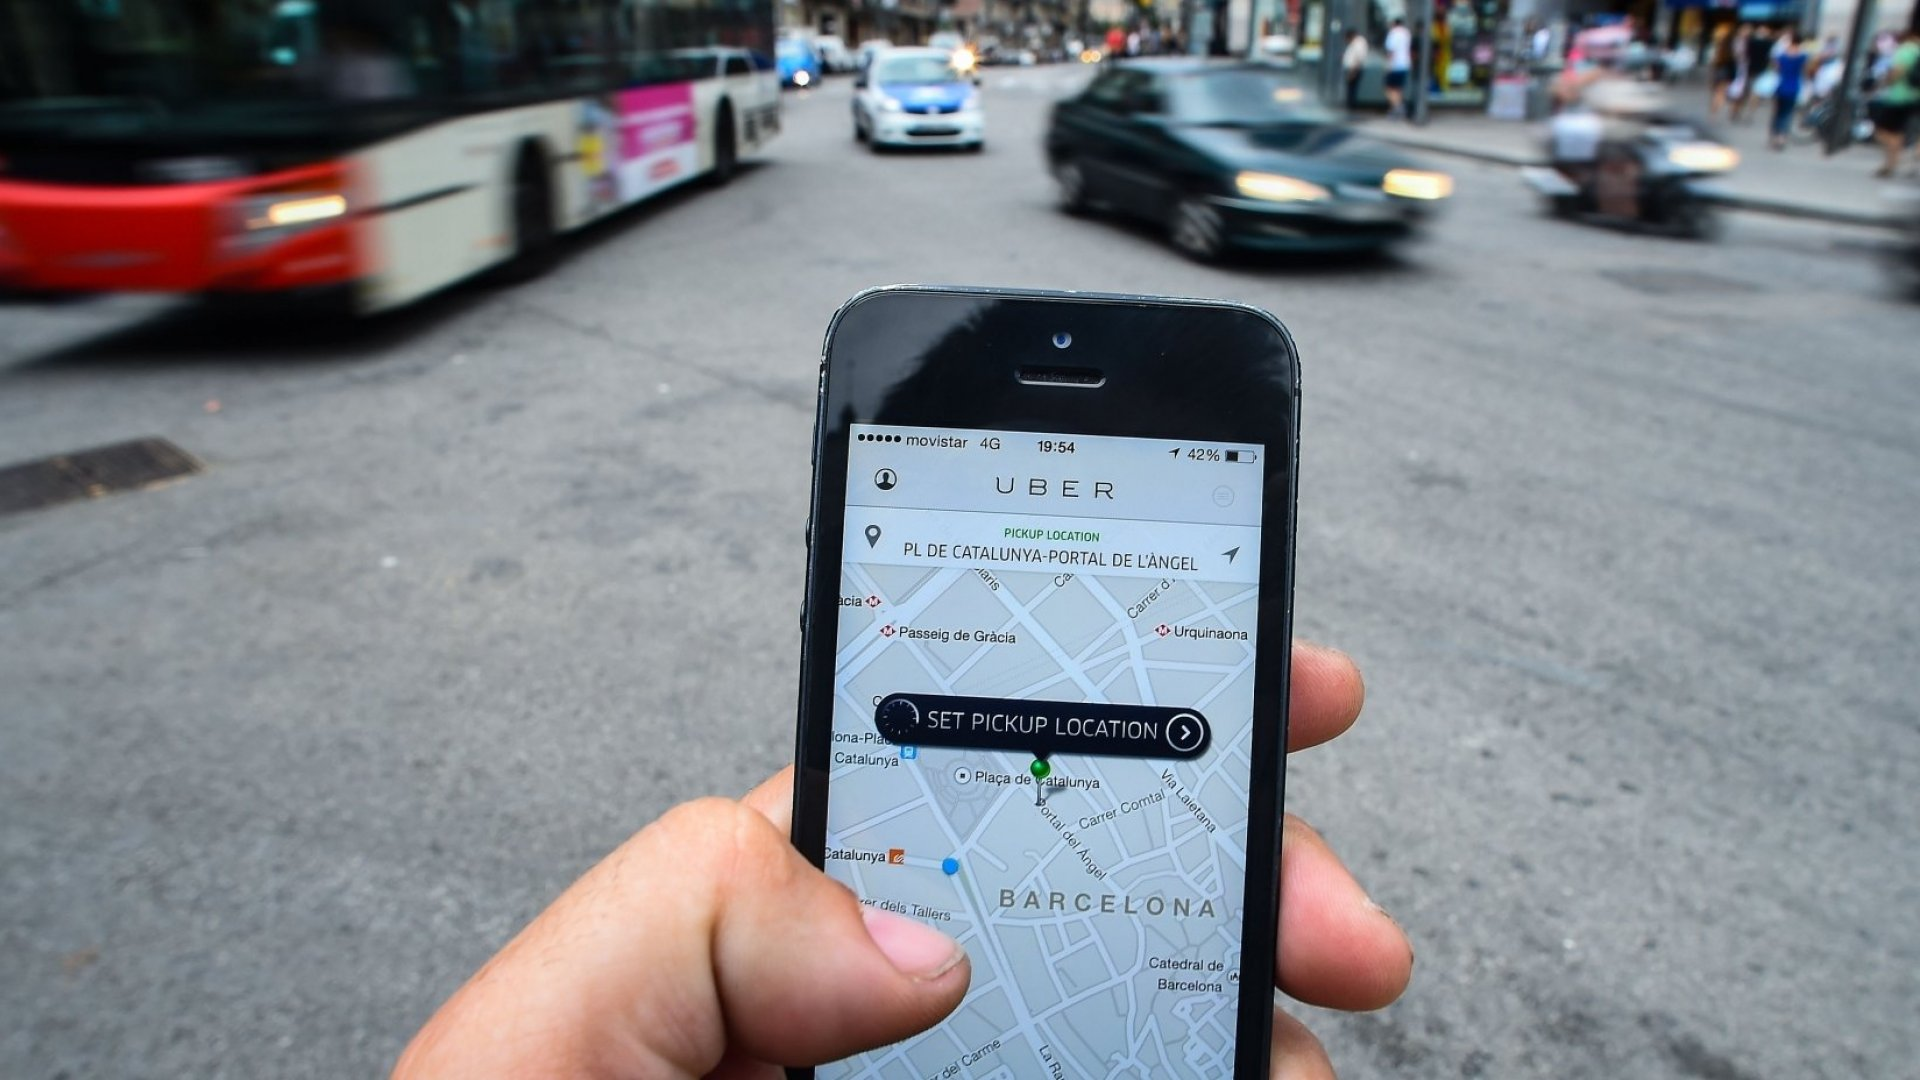 A Study of Uber Drivers 'Completely Explains the Gender Pay Gap'